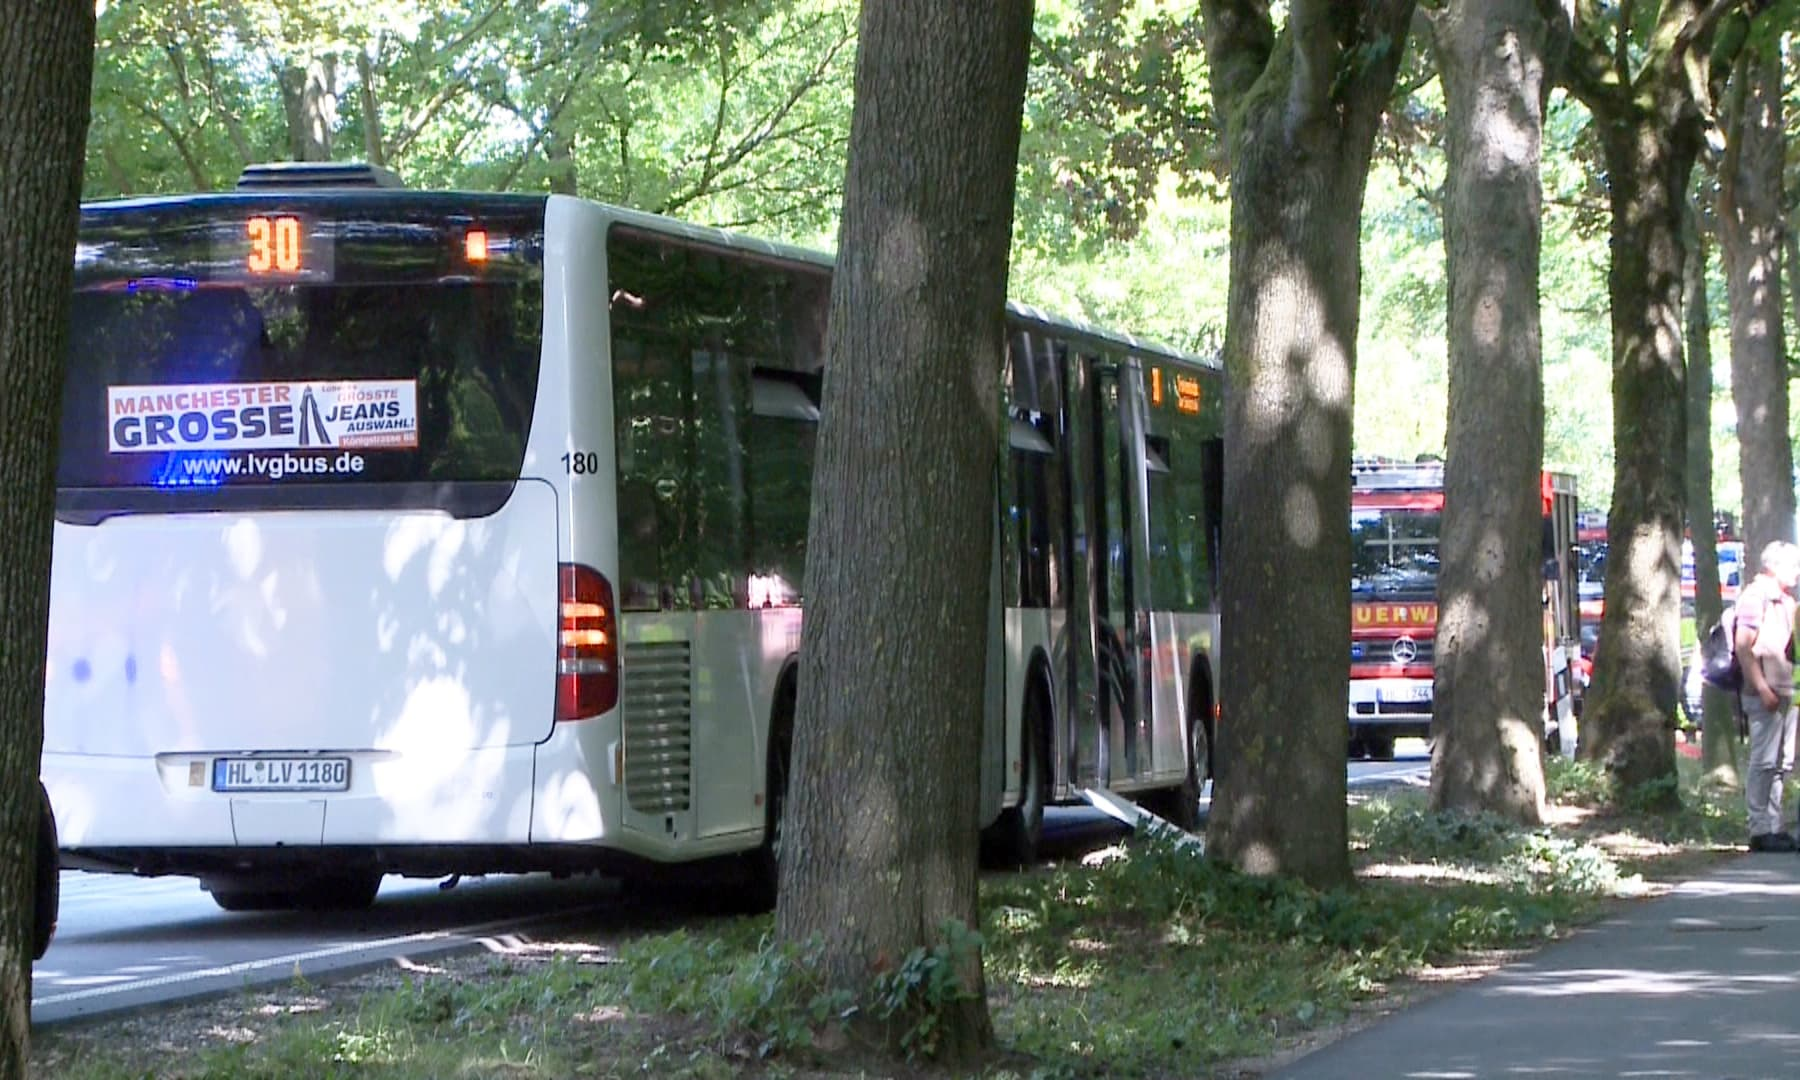 A bus stands on a street in Luebeck after a man attacked people inside. —AP